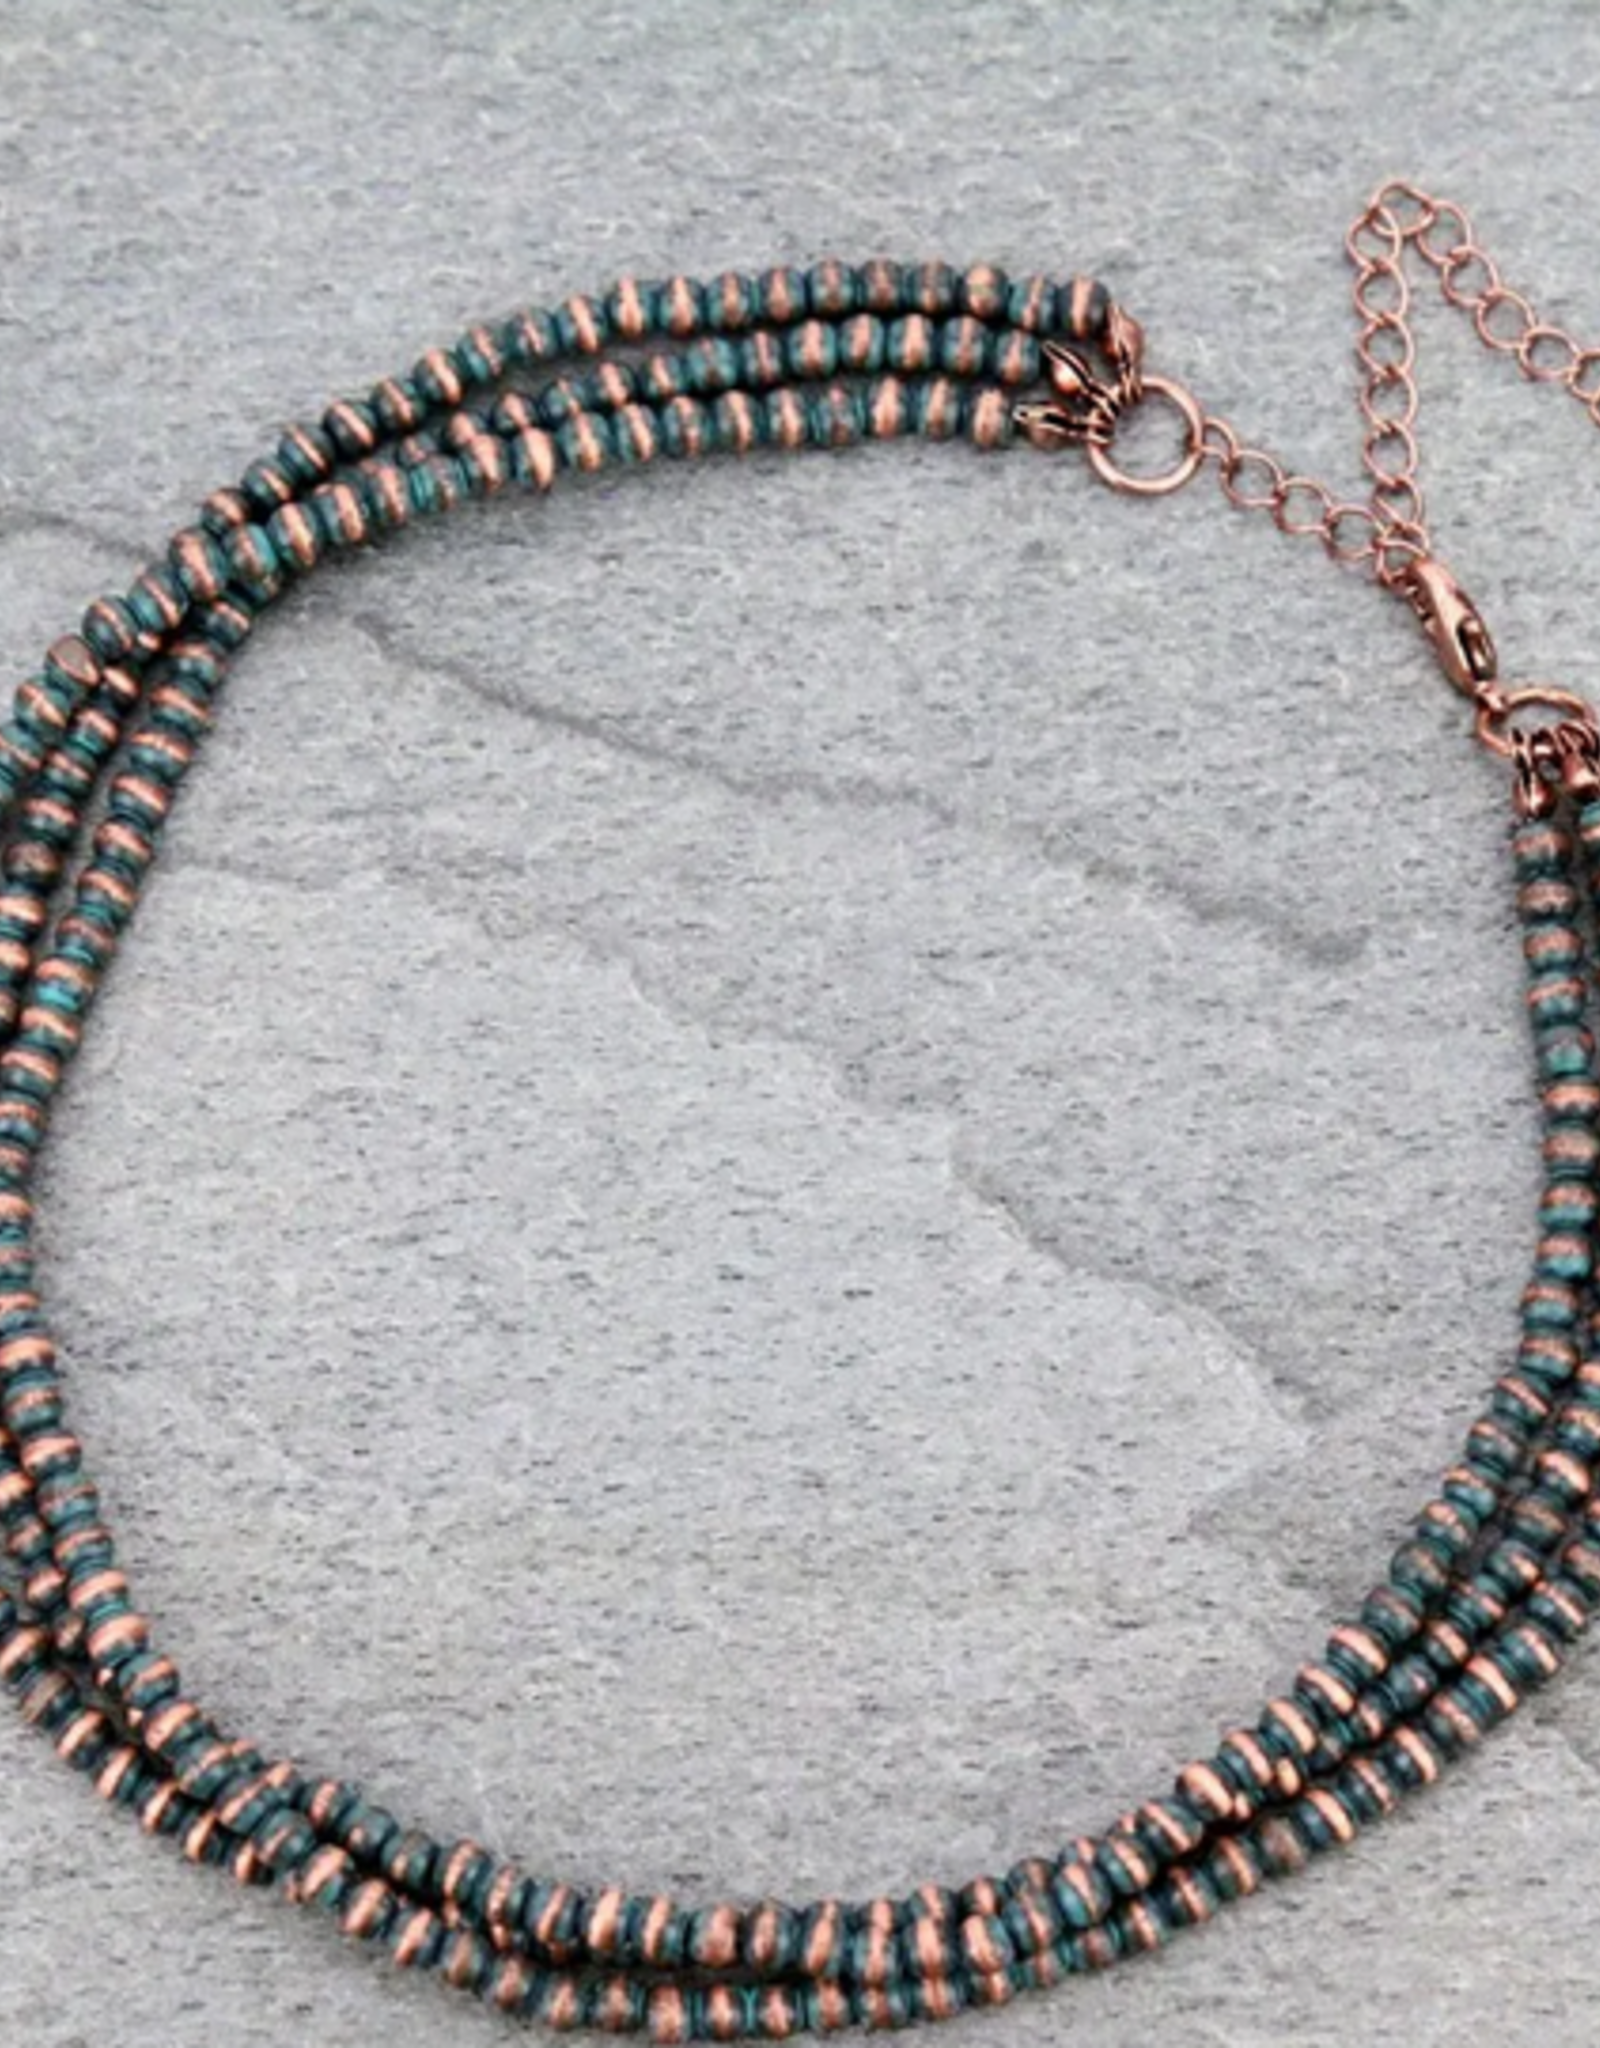 NECKLACE 4MM NAVAJO PEARL LAYERED CHOKER COPPER/TURQ